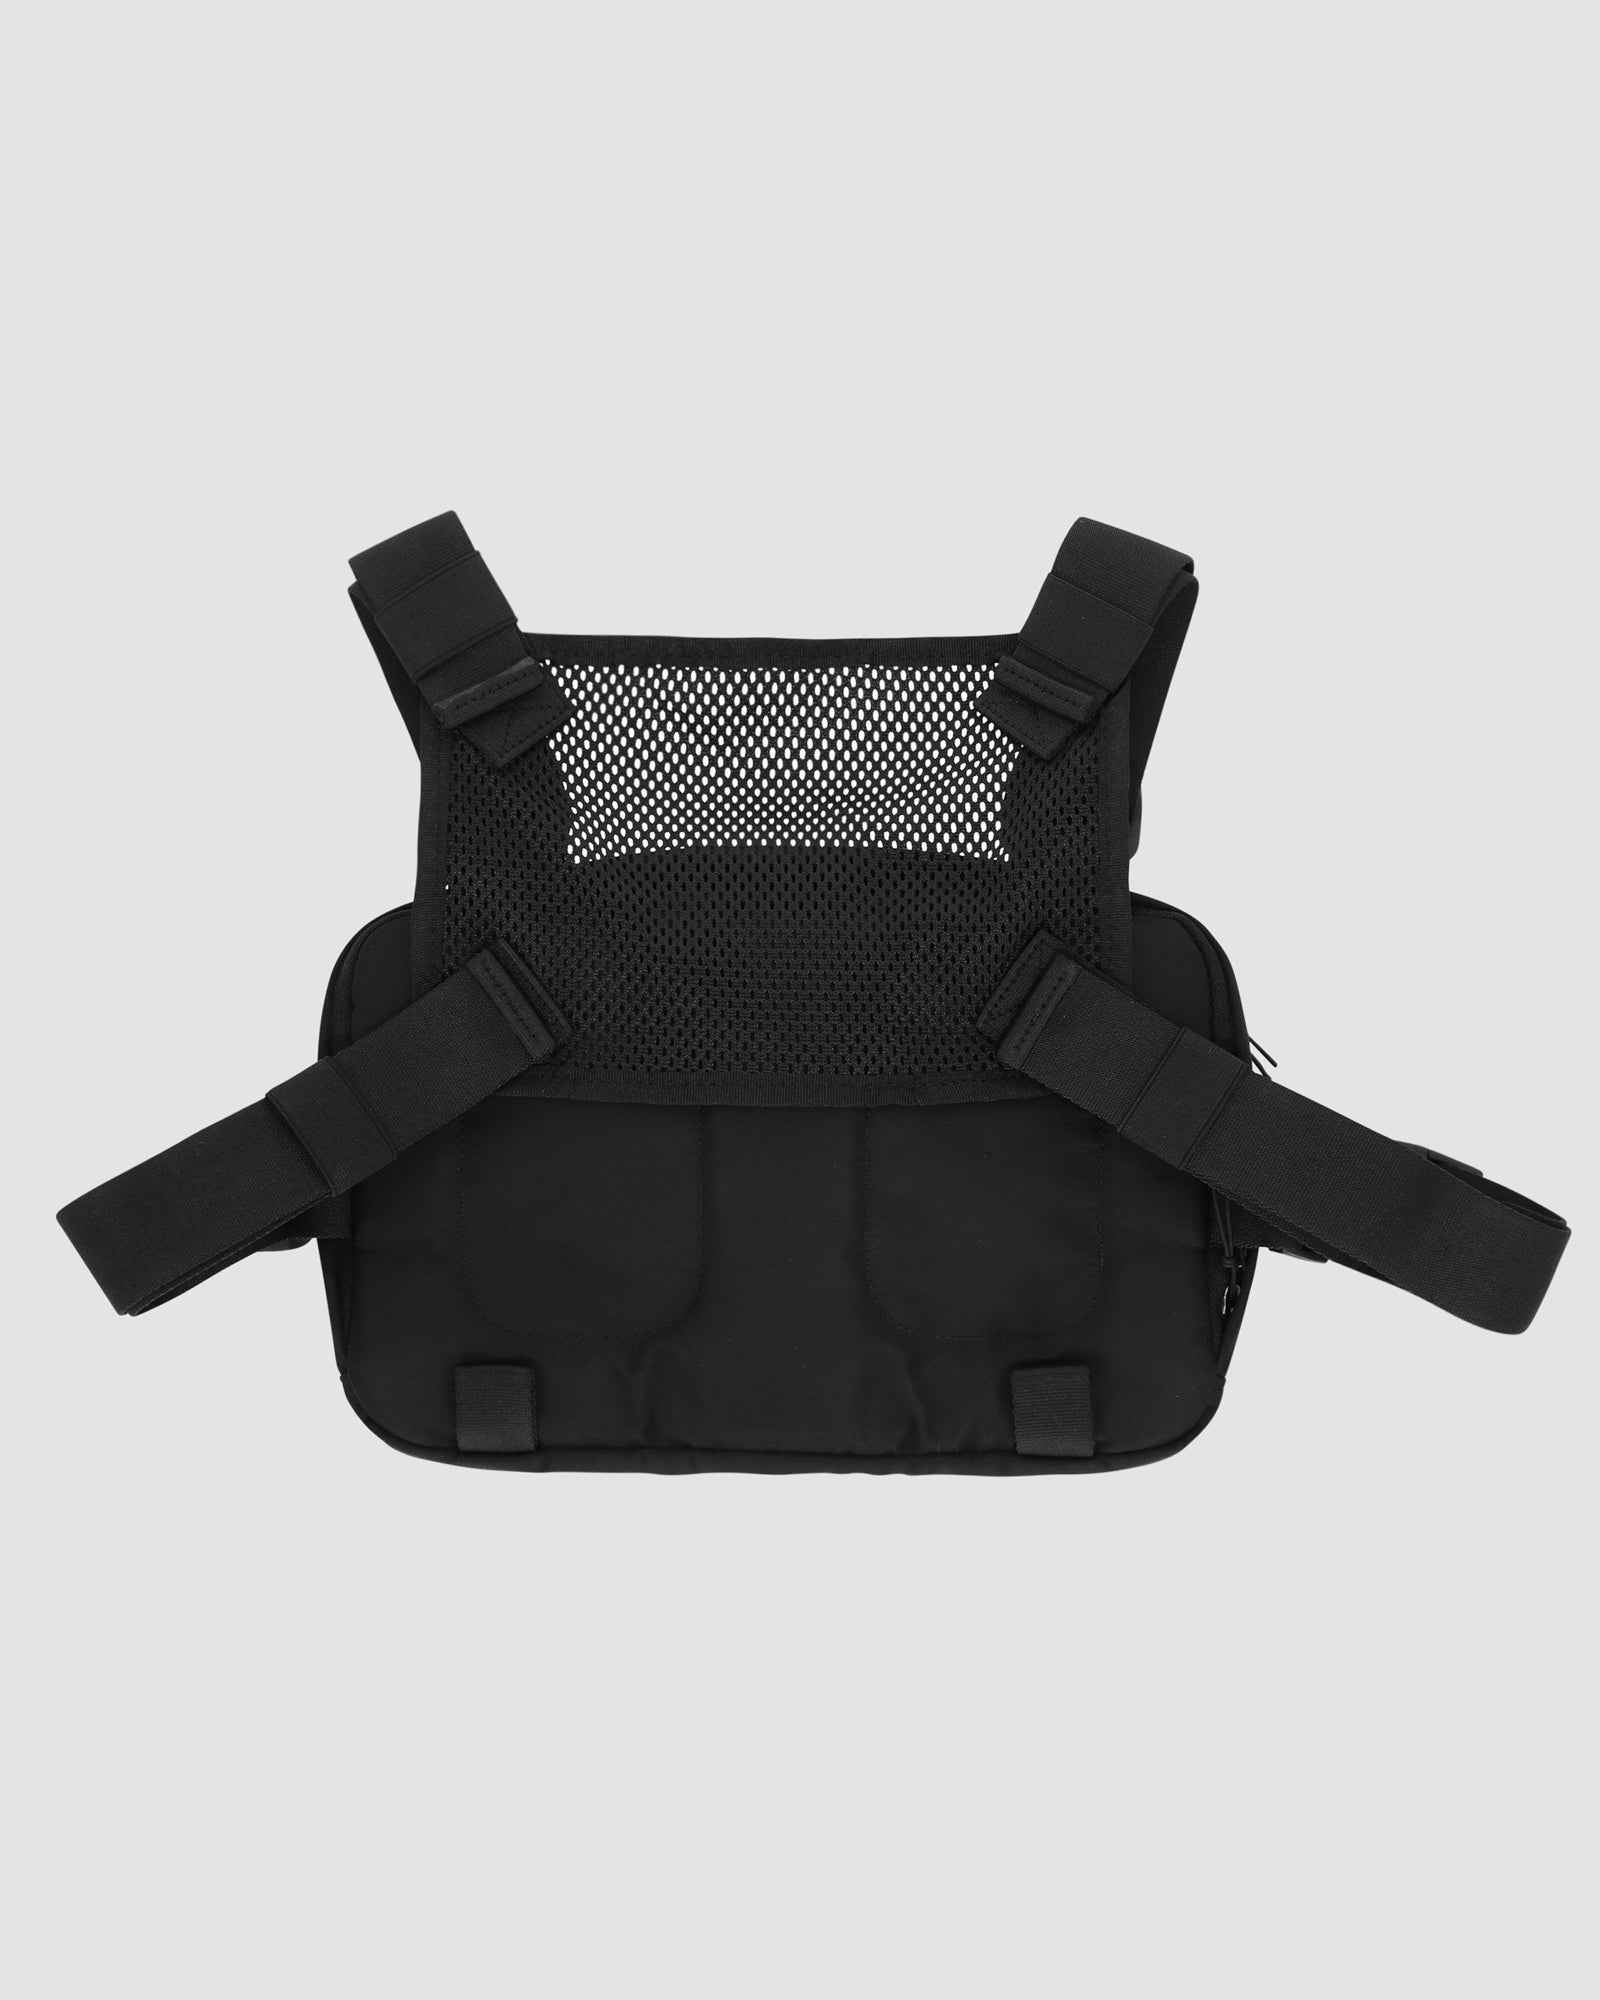 1017 ALYX 9SM | NEW CHEST RIG | Chest Rig | Accessories, Black, F19, Man, Woman